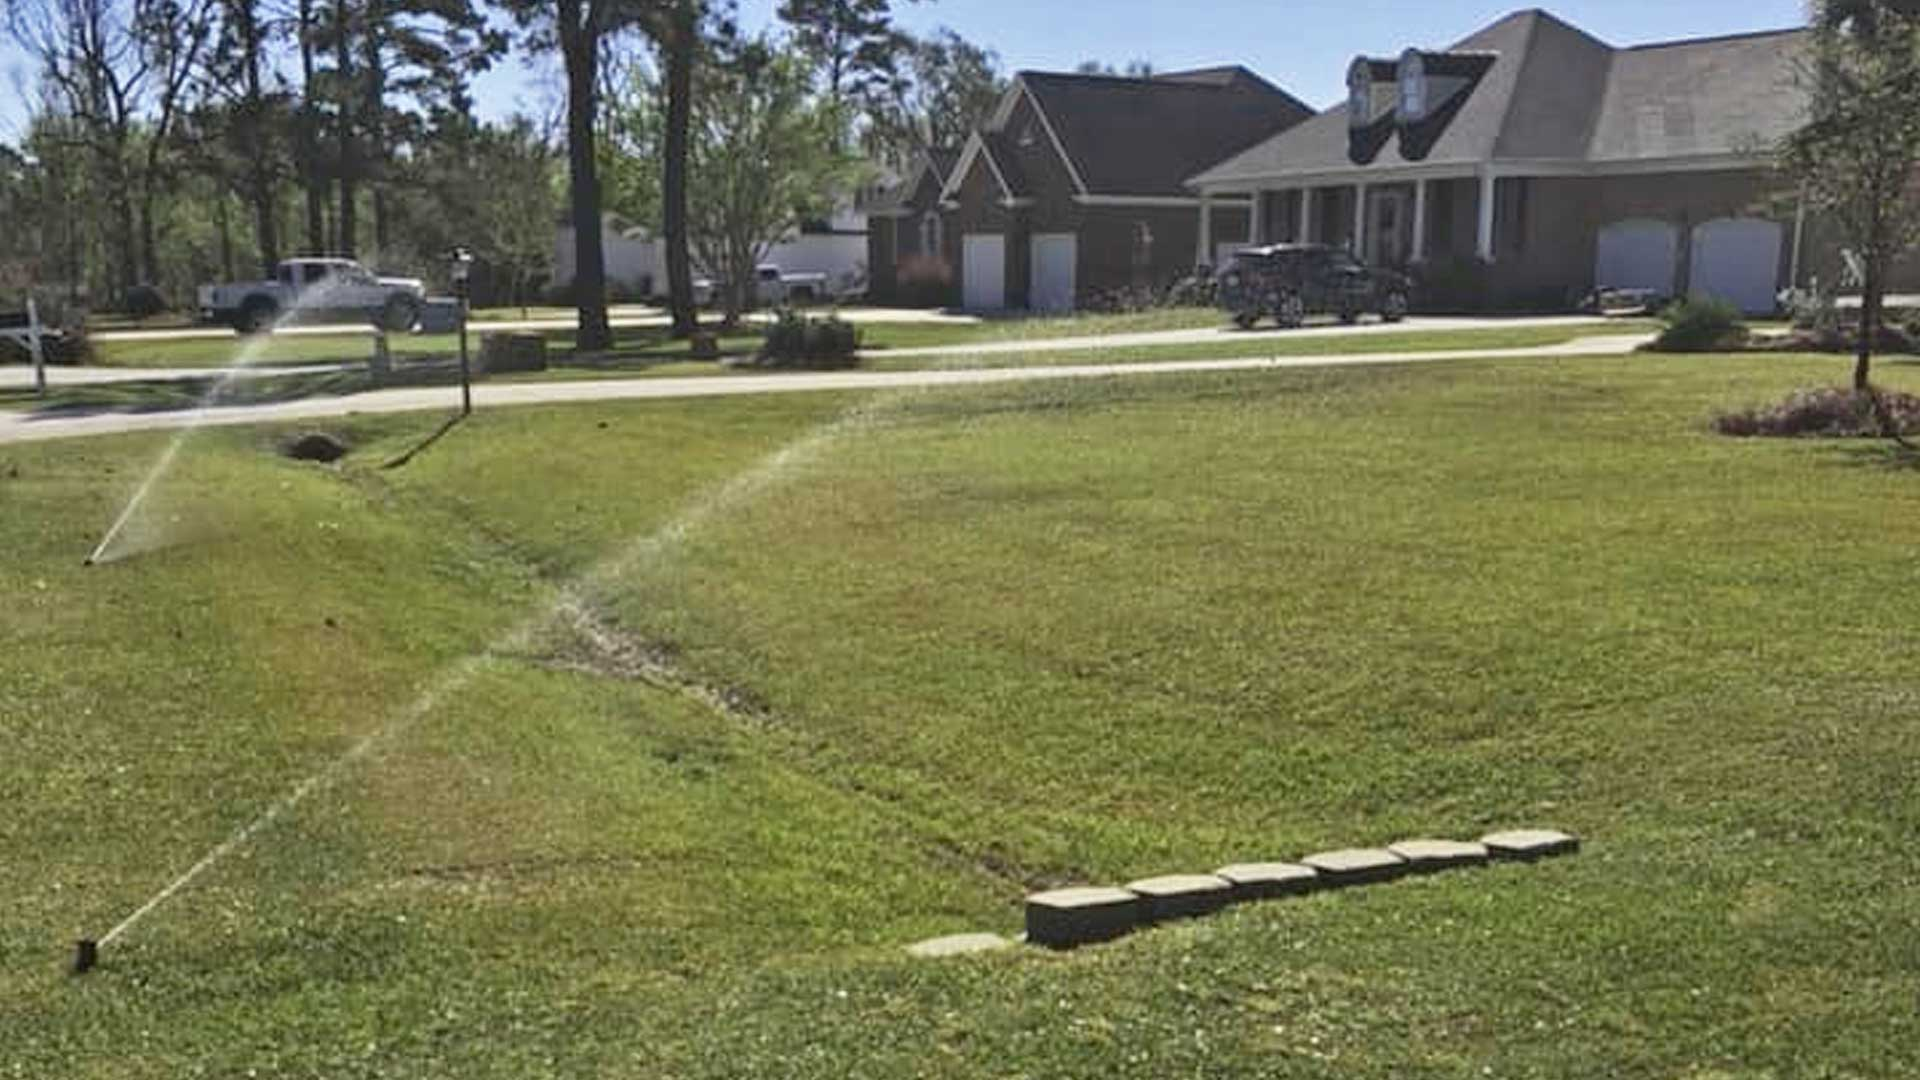 Sprinklers watering a residential lawn in Atlantic Beach after we installed a new irrigation system.